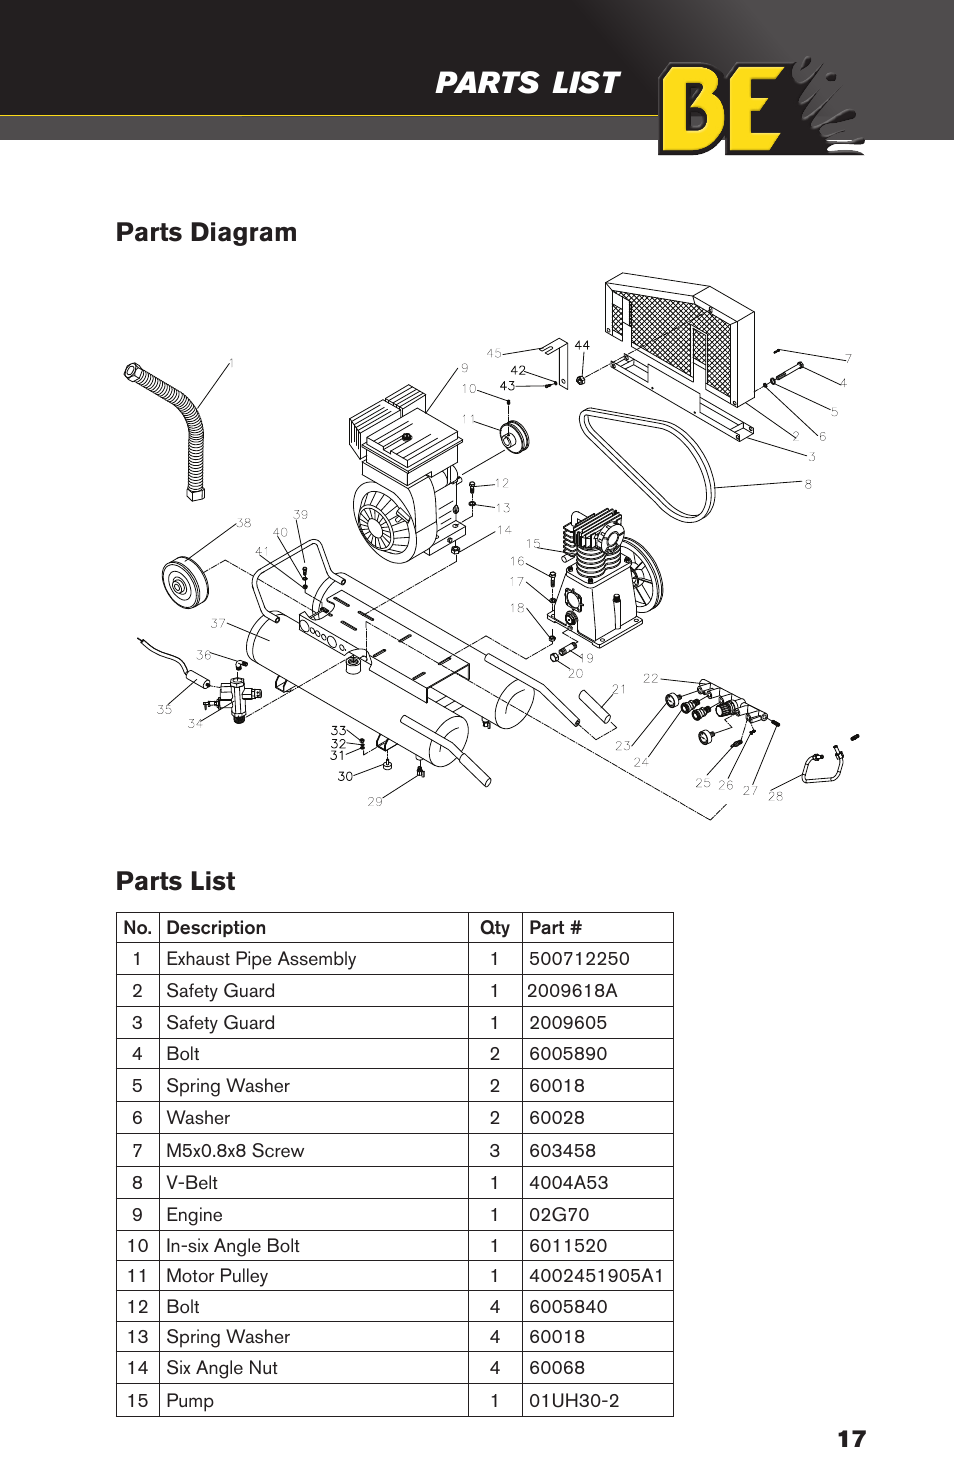 Parts, List, Parts diagram parts list | BE Pressure supply 8 Gallon Wheeled  Gas Air Compressor AC708RB User Manual | Page 17 / 24